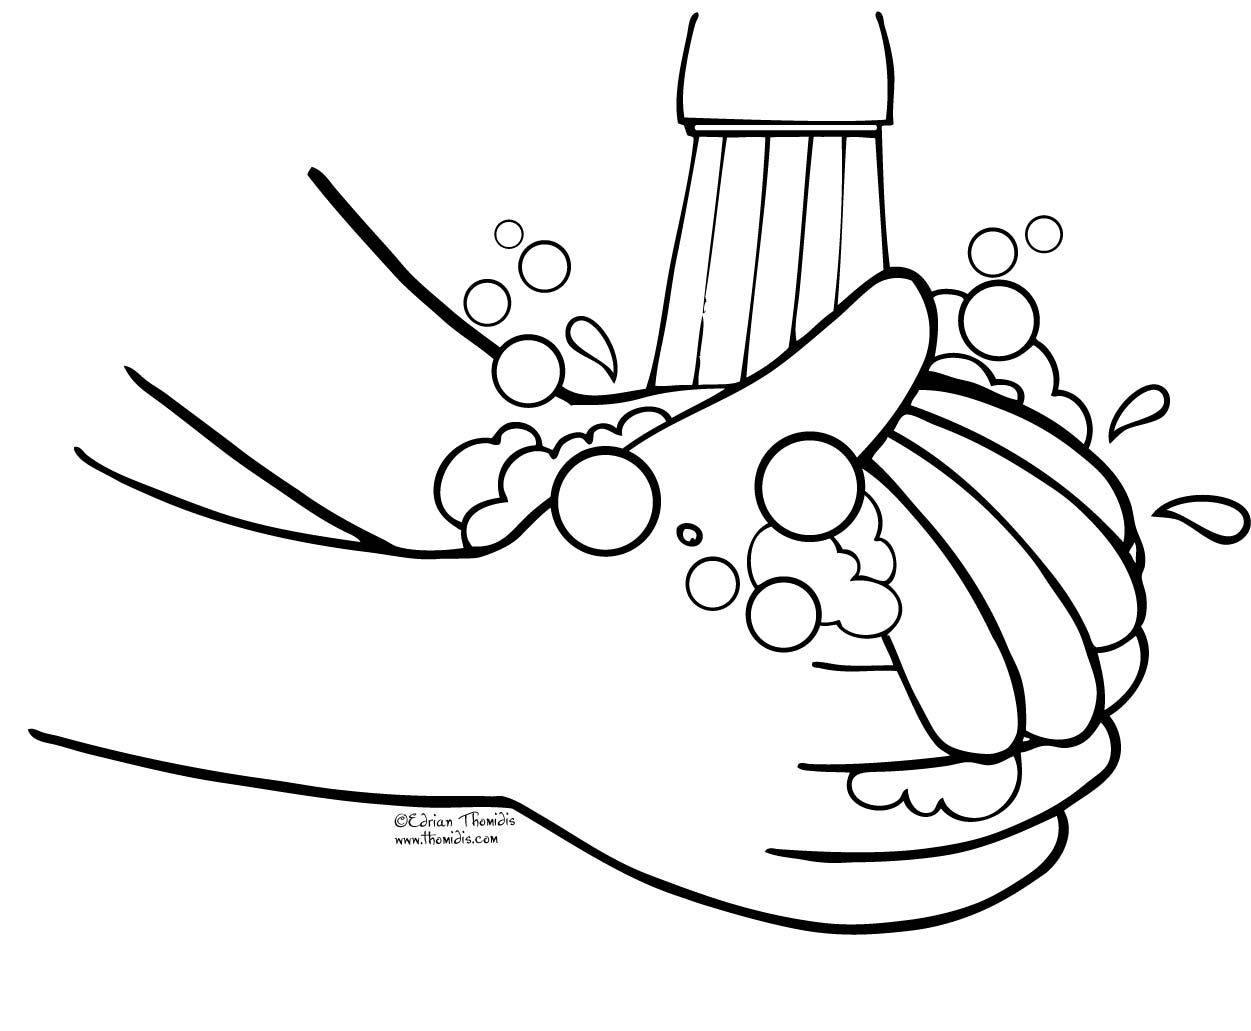 1251x1031 Wash Hands Clip Art Black And White Clipart